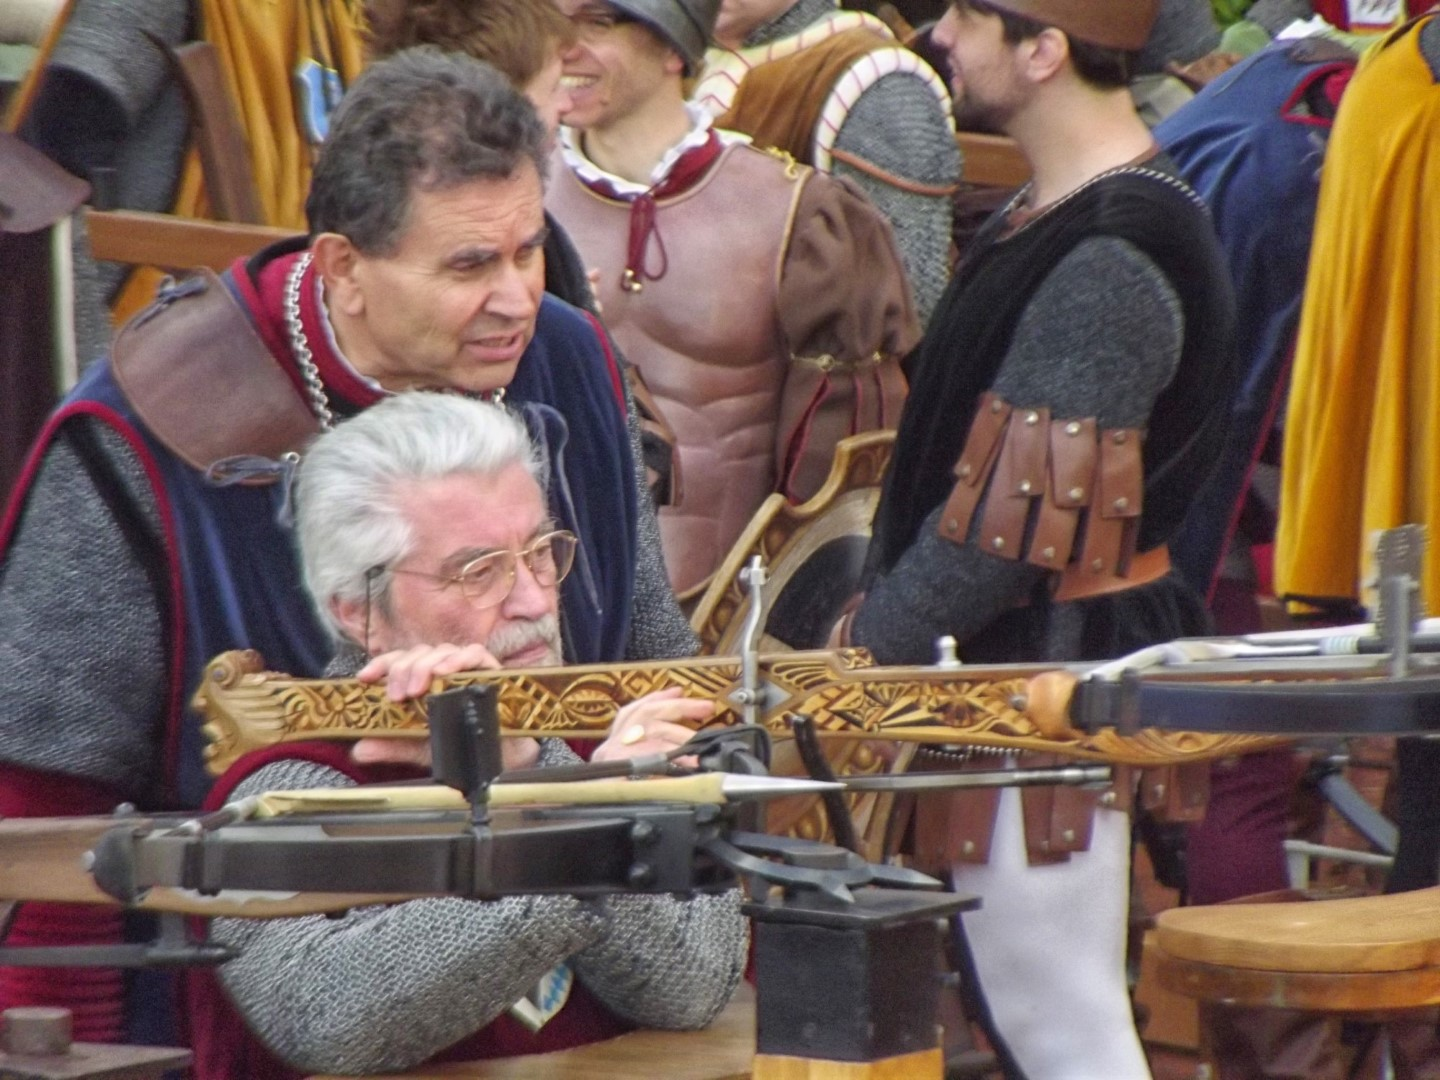 Two men with a cross bow